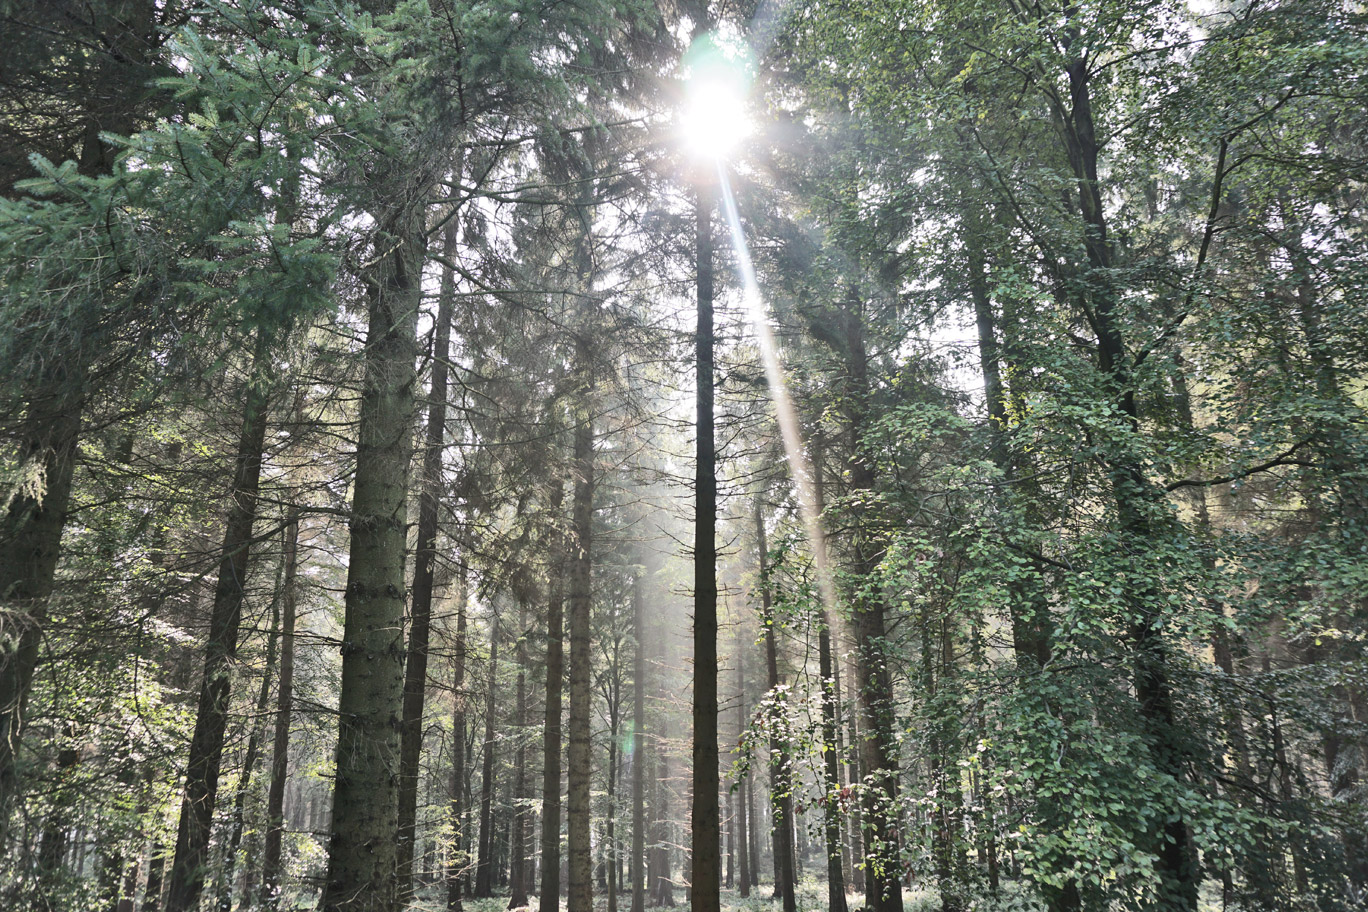 Light shining through the trees in a forest